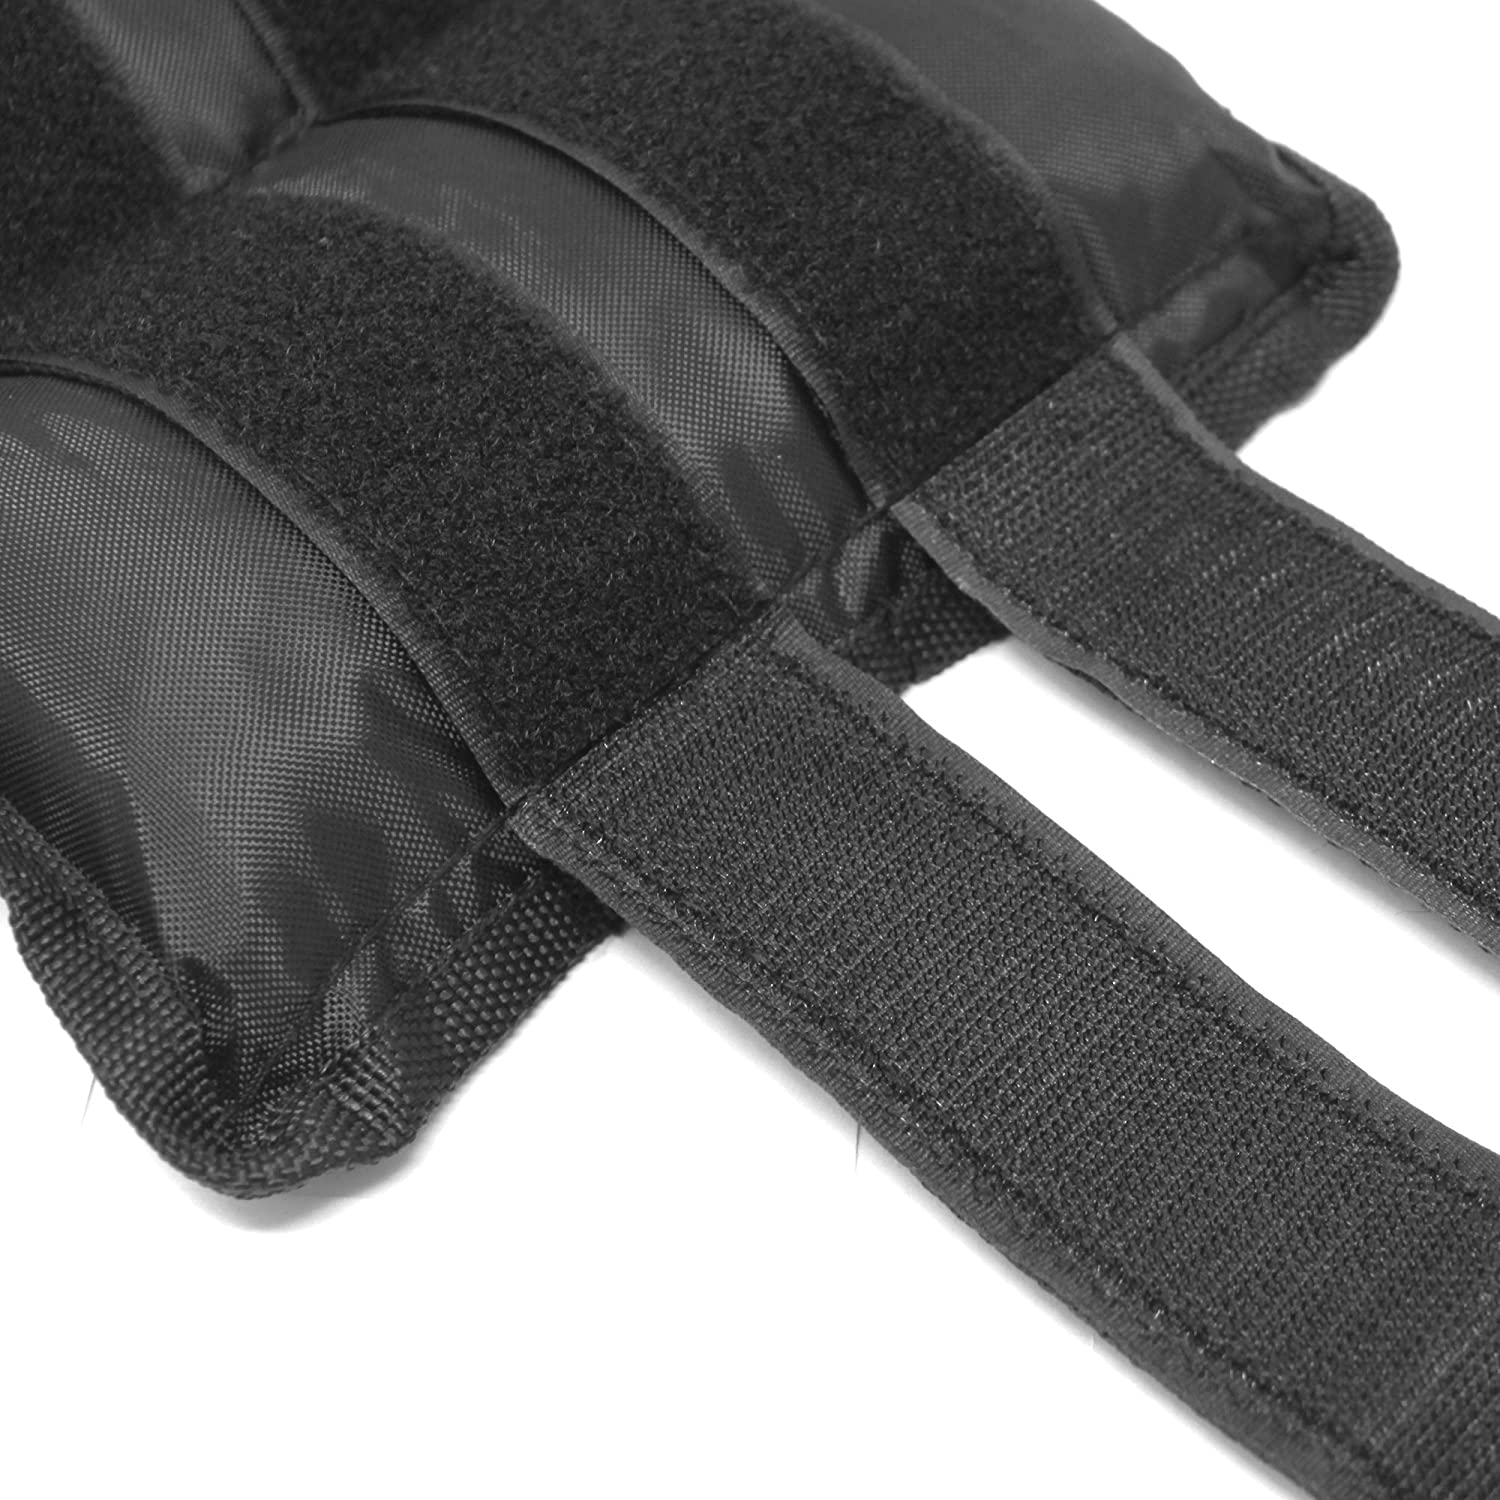 FITNESS MANIAC Adjustable Straps Ankle Weights Wrist Leg Weight Sand Filling 10lbs 12lbs 14lbs 16lbs Double Straps for Walking Jogging Gym Fitness Exercise Gymnastics Aerobics